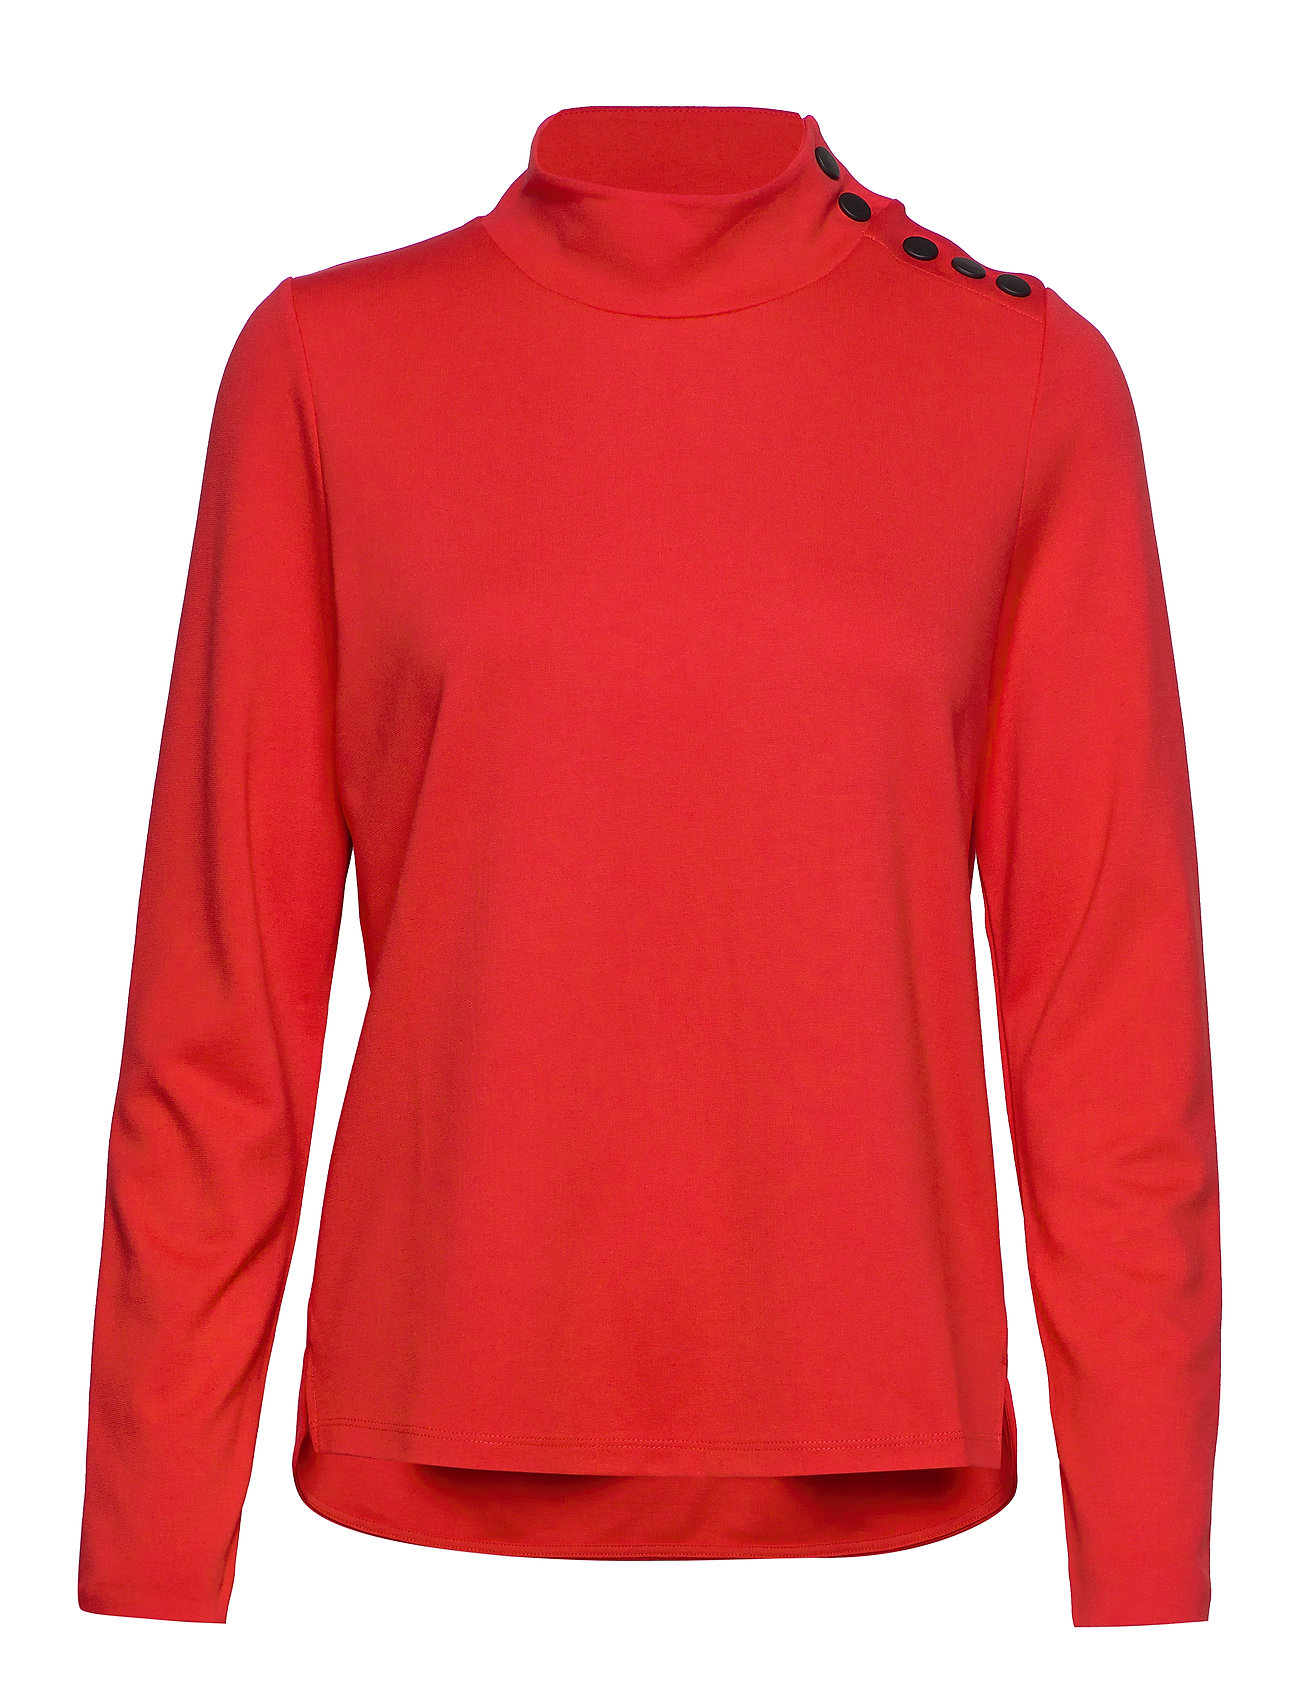 Image of Sweat-Shirt Short-Sl Sweatshirt Trøje Rød Gerry Weber (3232216865)